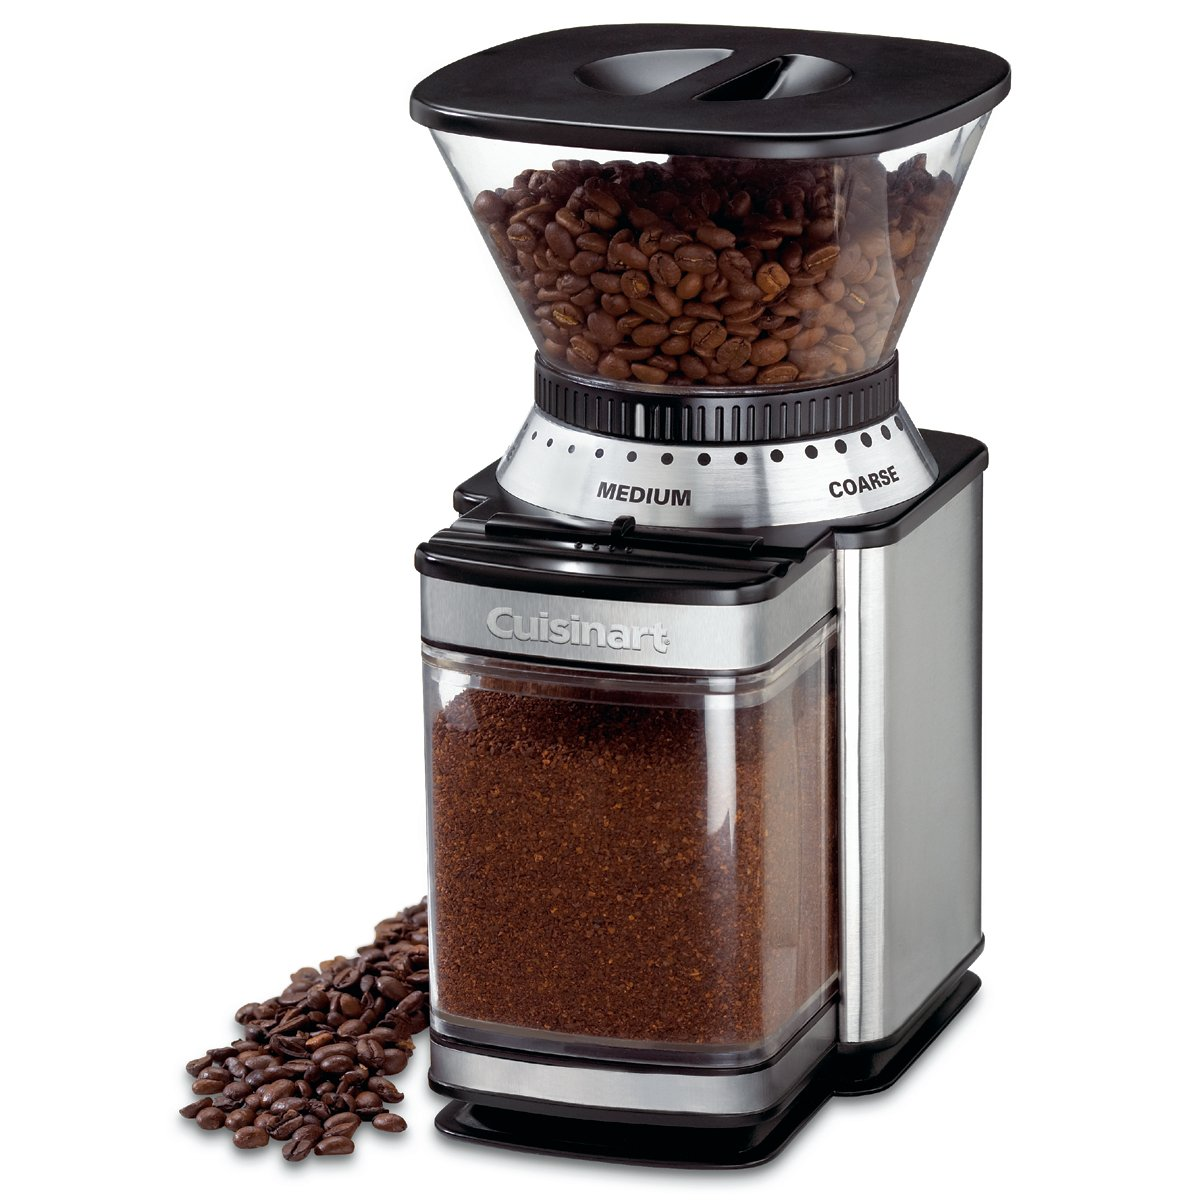 Cuisinart DBM-8 Supreme Grind Automatic Burr Mill by Cuisinart